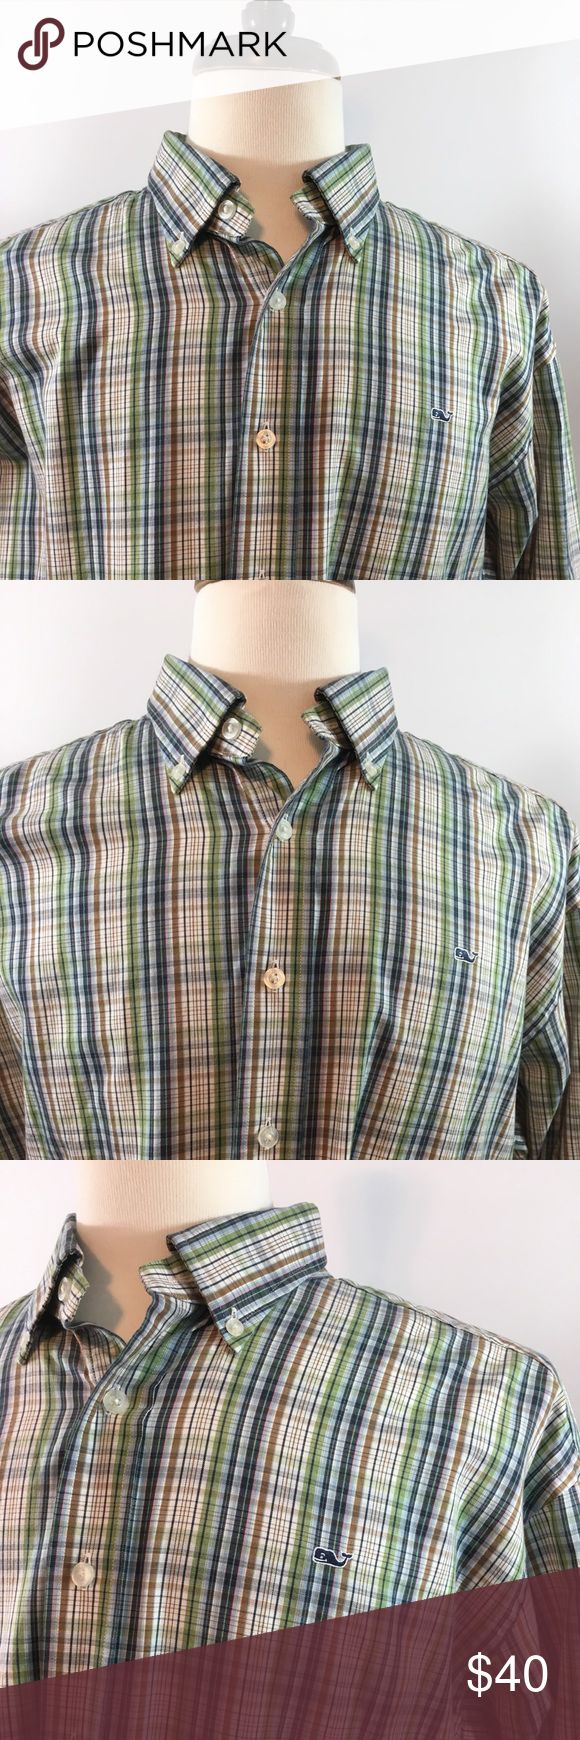 Vineyard Vines XL Whale Shirt Multicolored Vineyard Vines XL Multicolored Whale Shirt. In very good pre used condition free of any rips or stains and from a pet free and smoke free home.. Long sleeves and made from 100% Cotton. Thanks for looking, please check out bundles rates! Vineyard Vines Shirts Casual Button Down Shirts